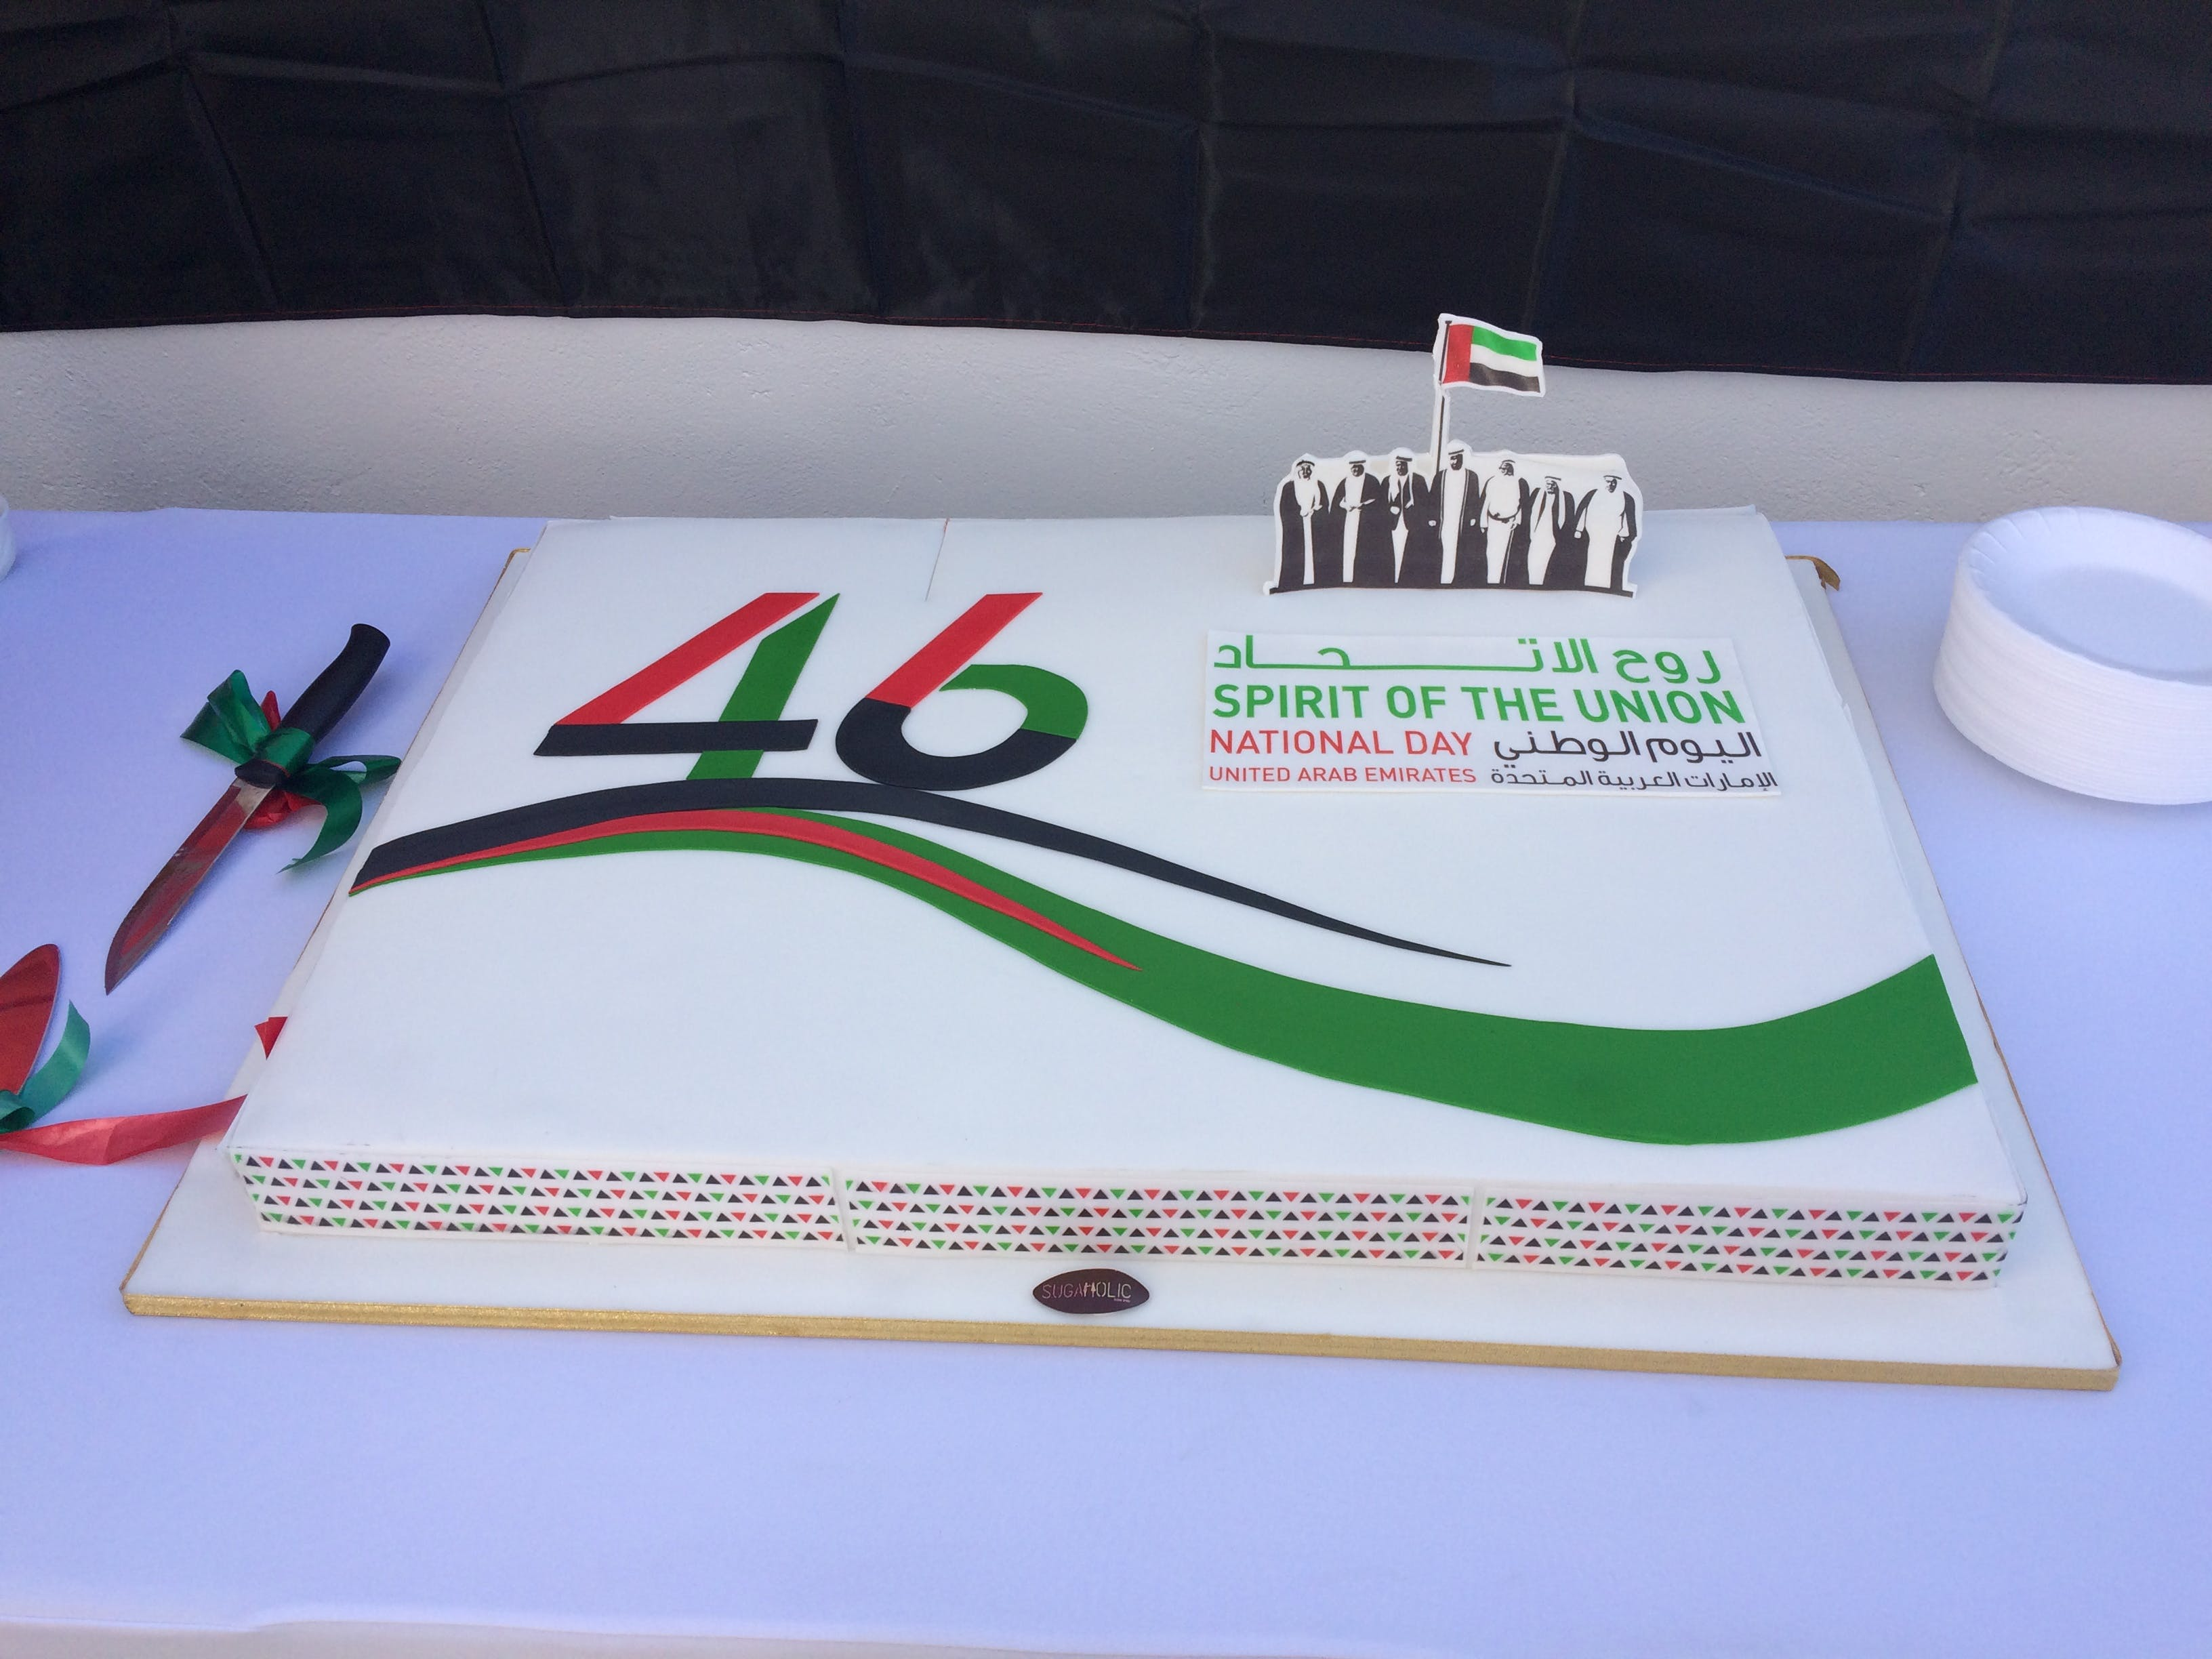 Free stock photo of 46th National Day UAE